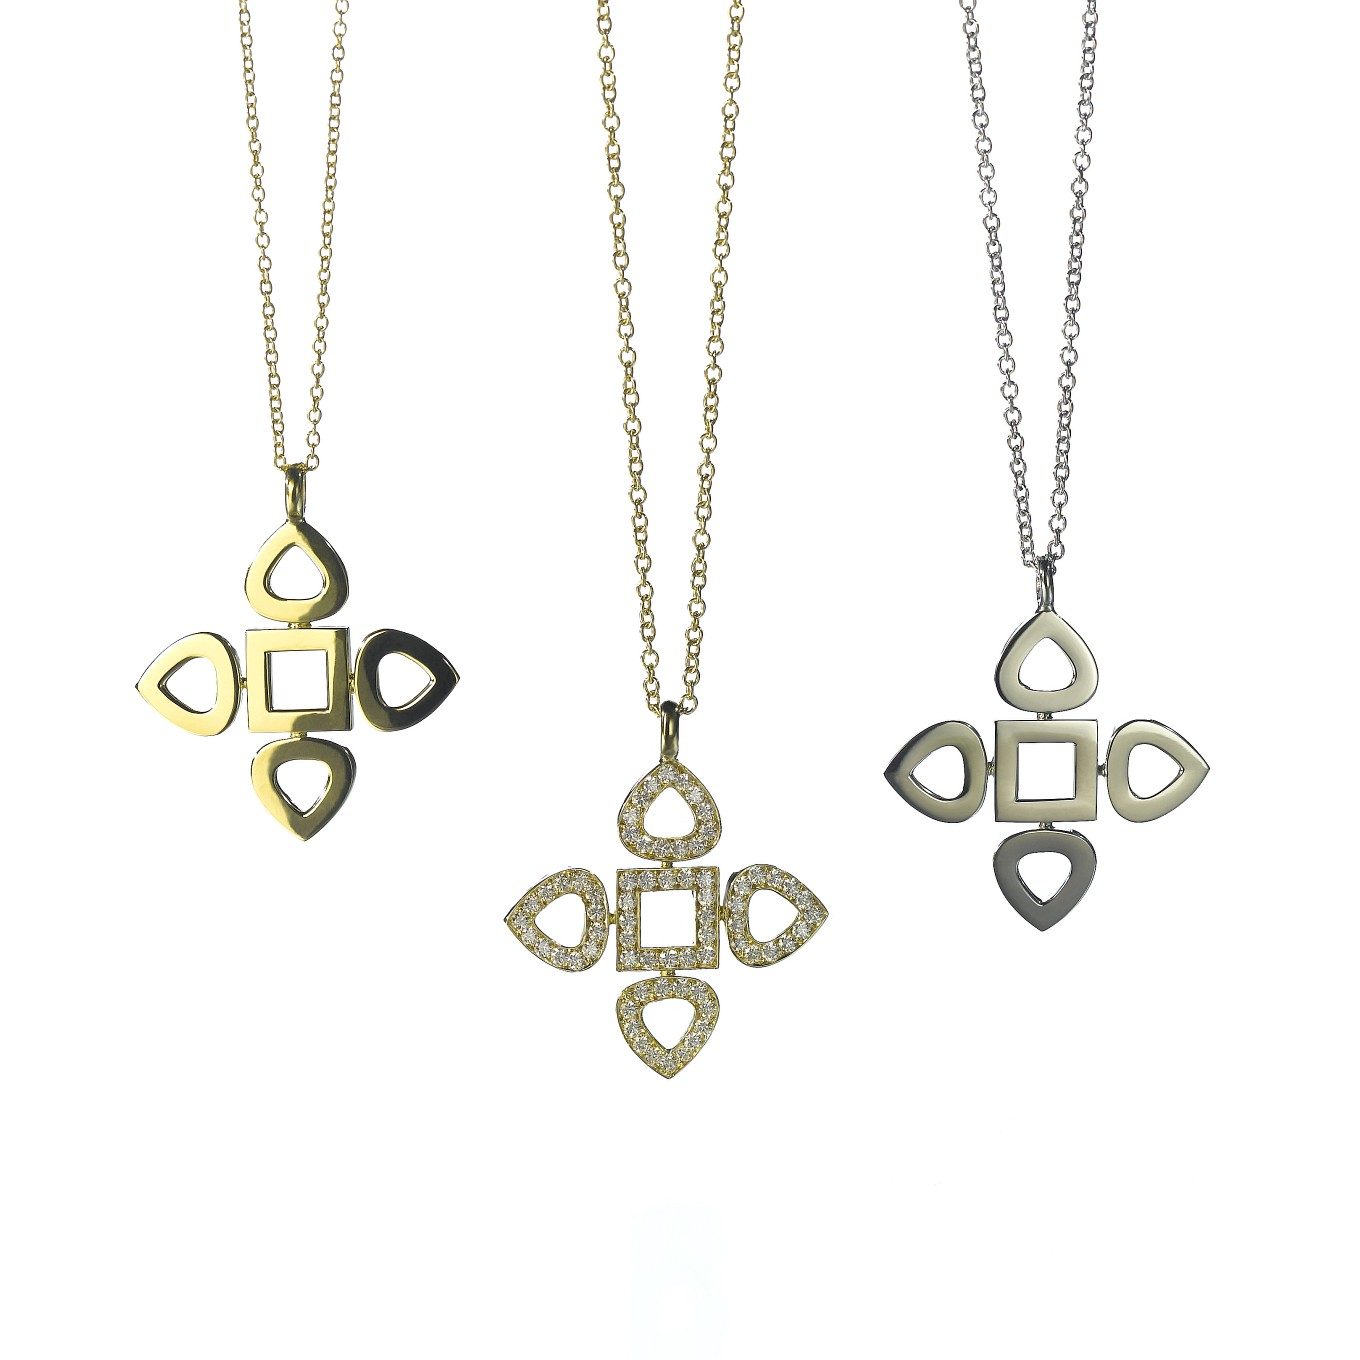 Flat Sevilla pendants in 18k gold & diamonds